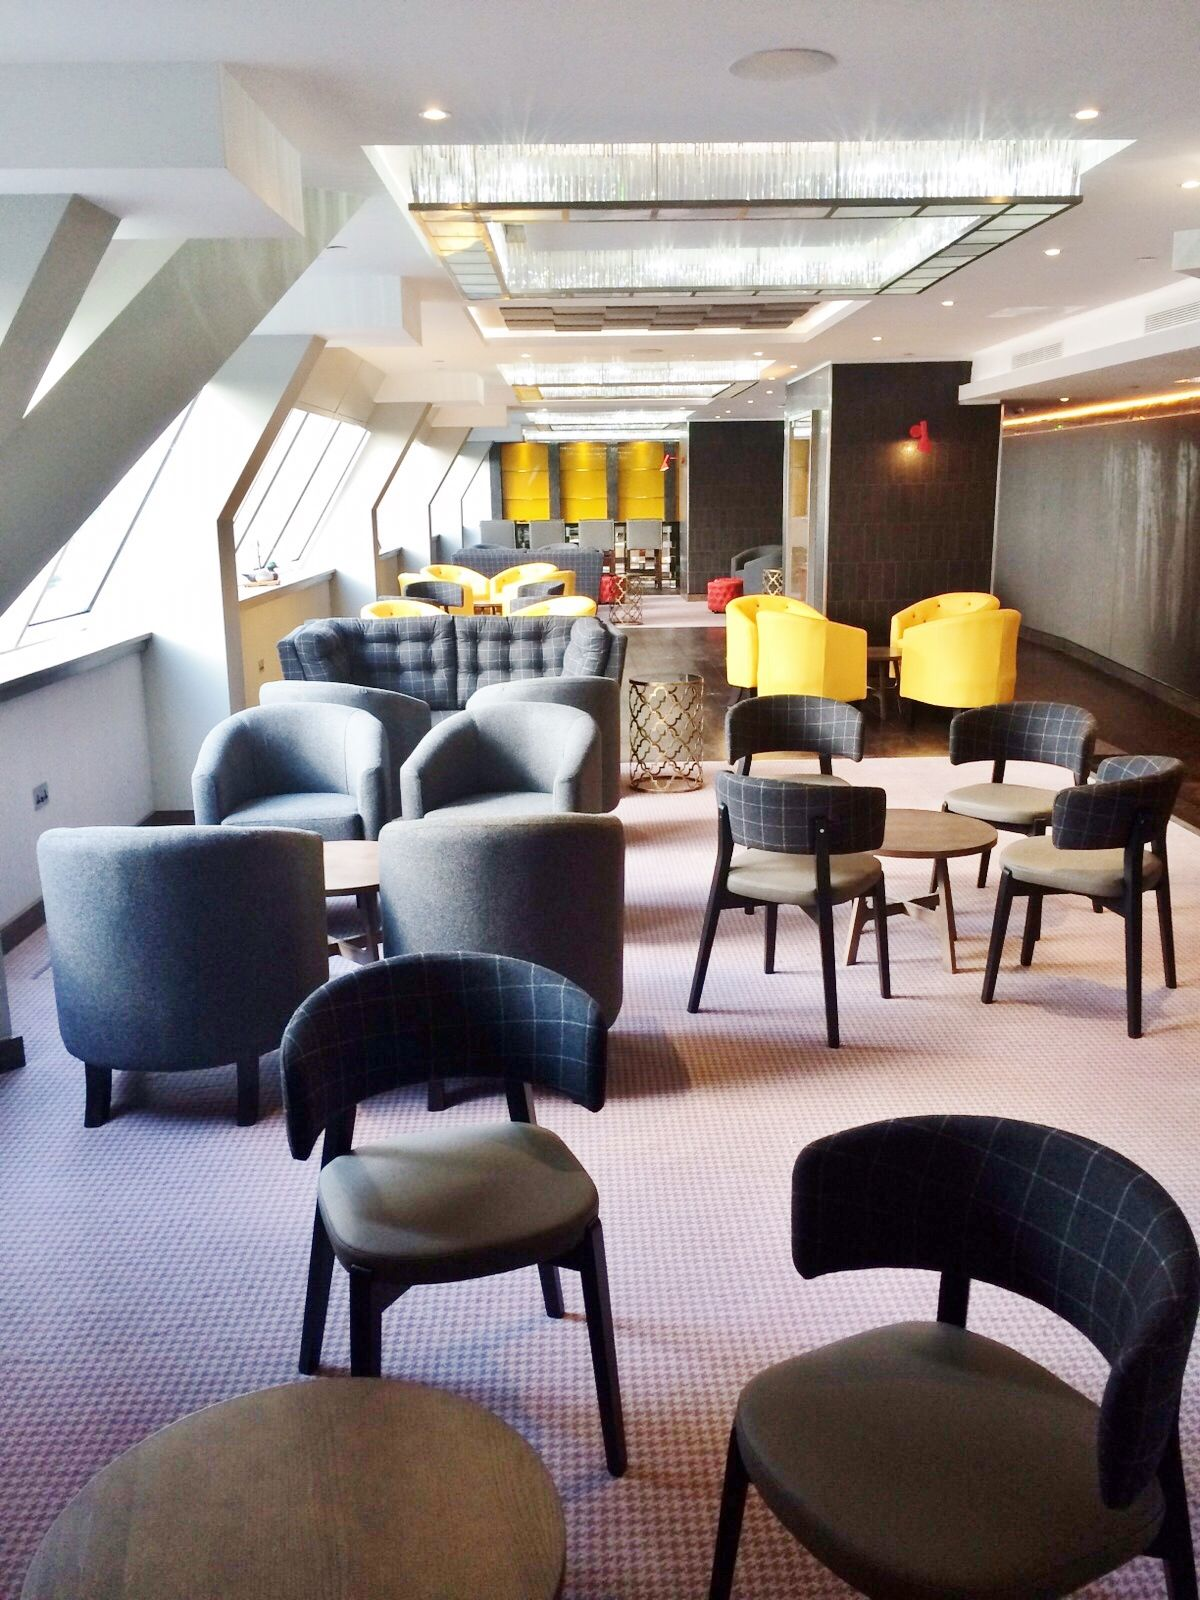 Montcalm Shoreditch: Our #ClubLounge, Nearly Ready... #MontcalmExperience